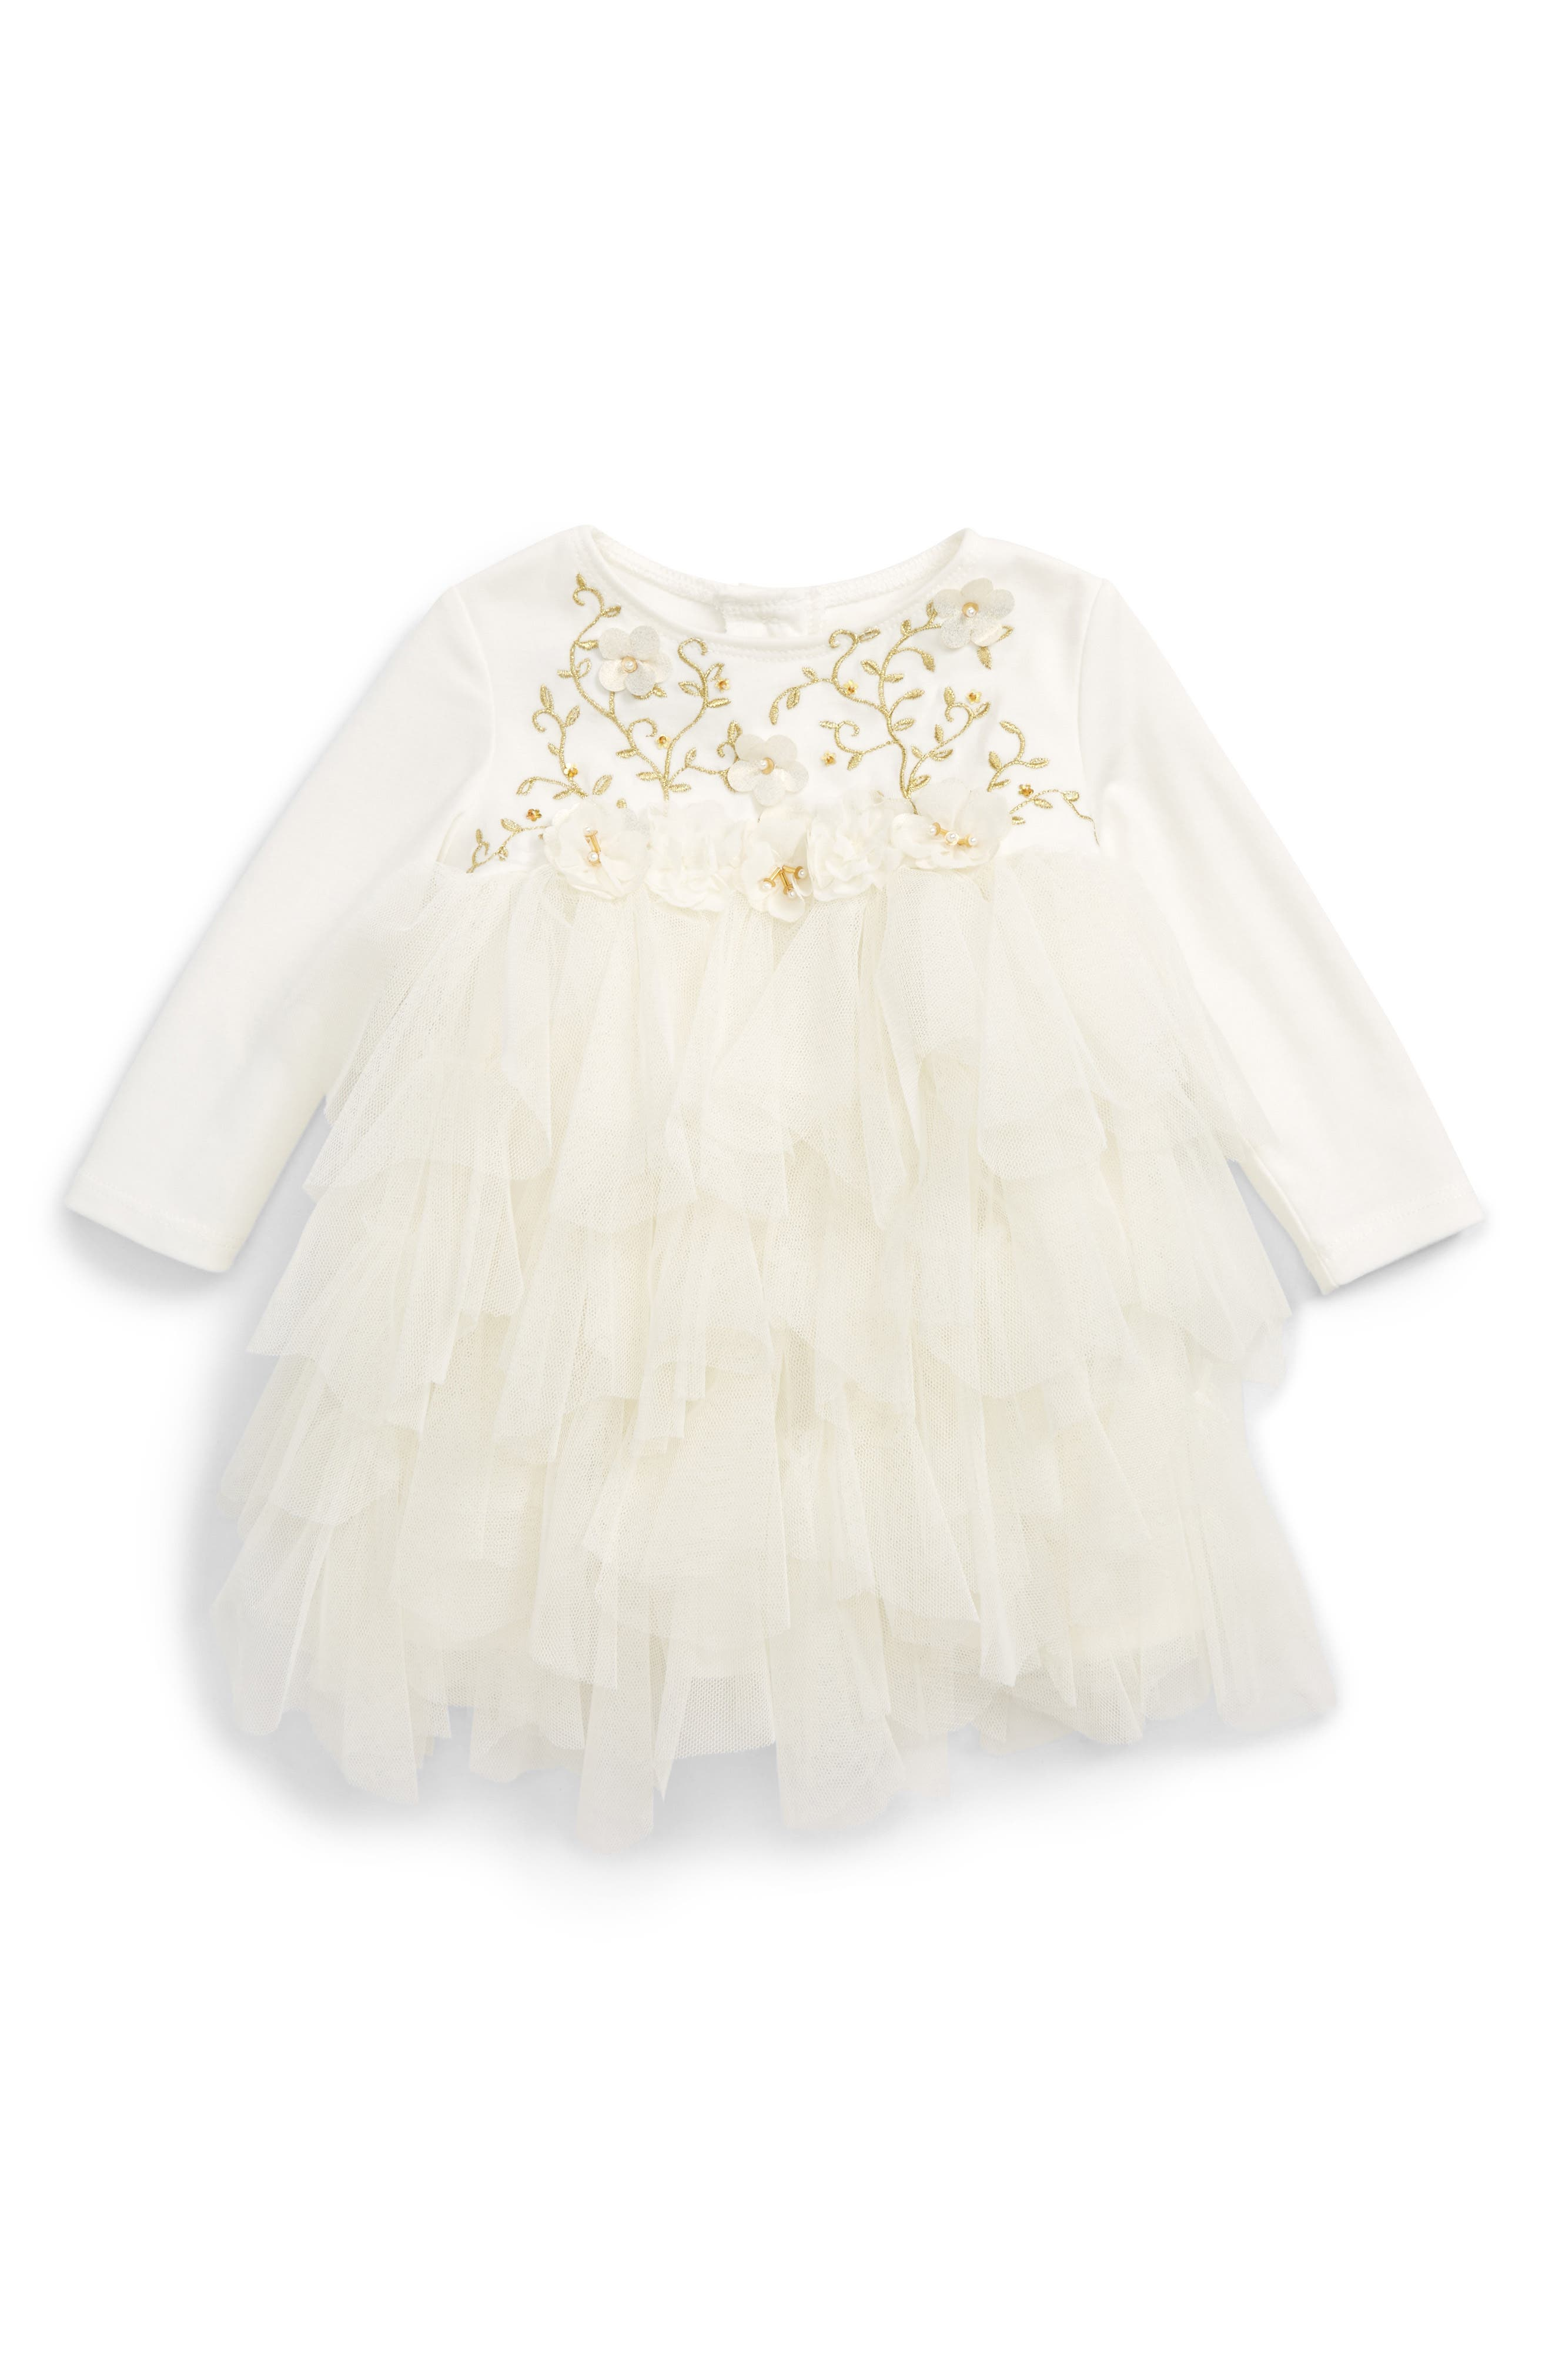 Alternate Image 1 Selected - Biscotti Embroidered Bodice Dress (Baby Girls)